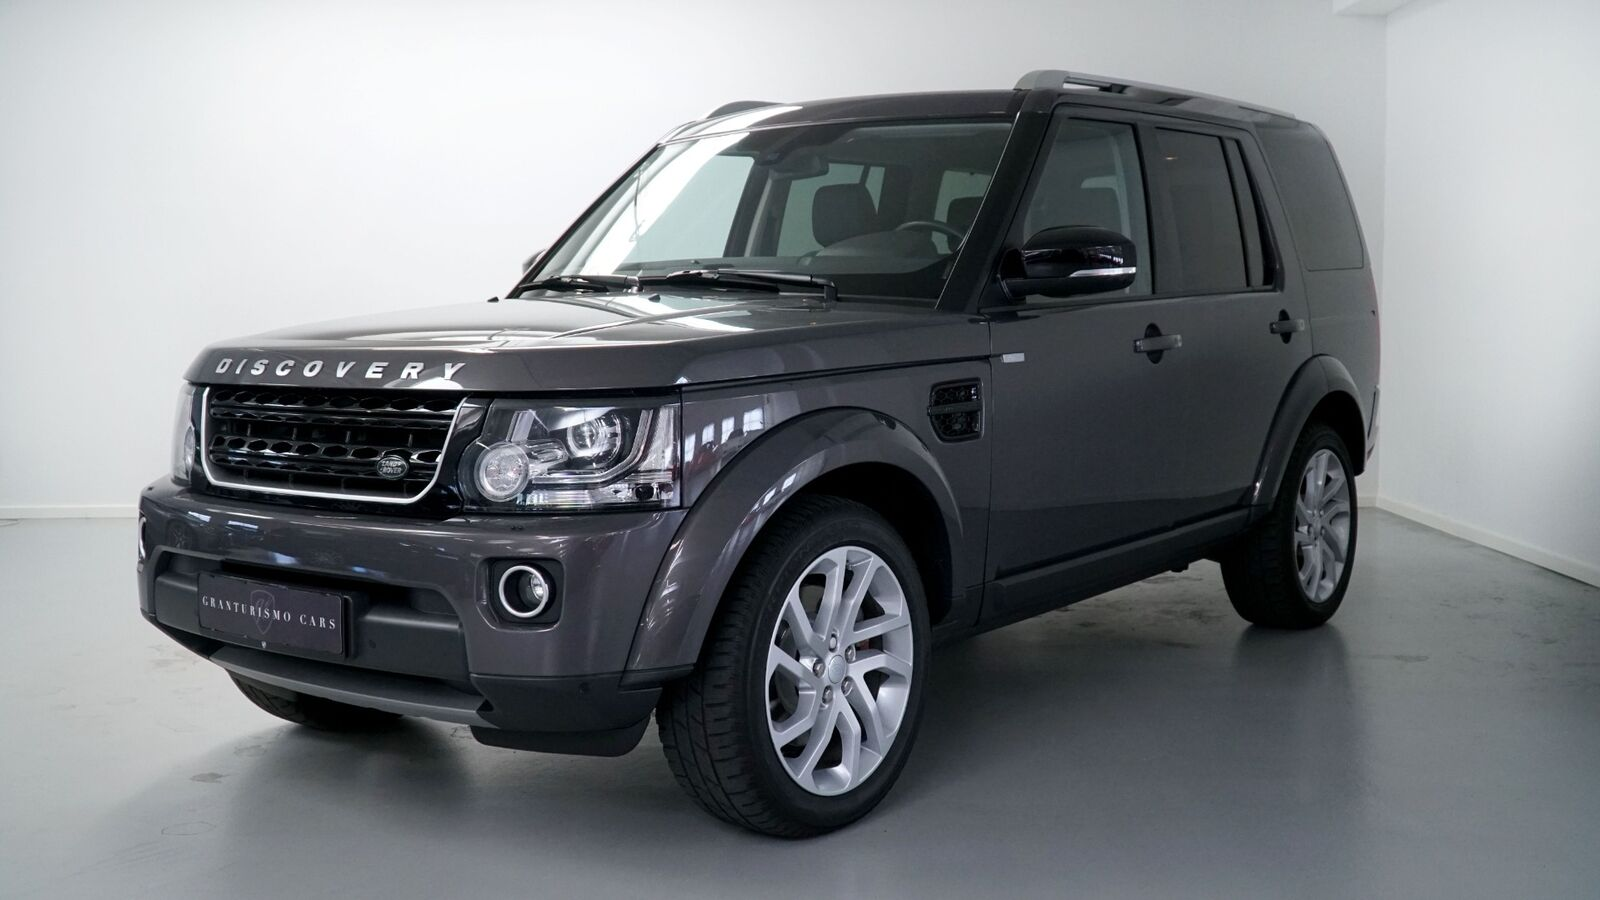 Land Rover Discovery 4 3,0 SDV6 Landmark Edition aut. 5d